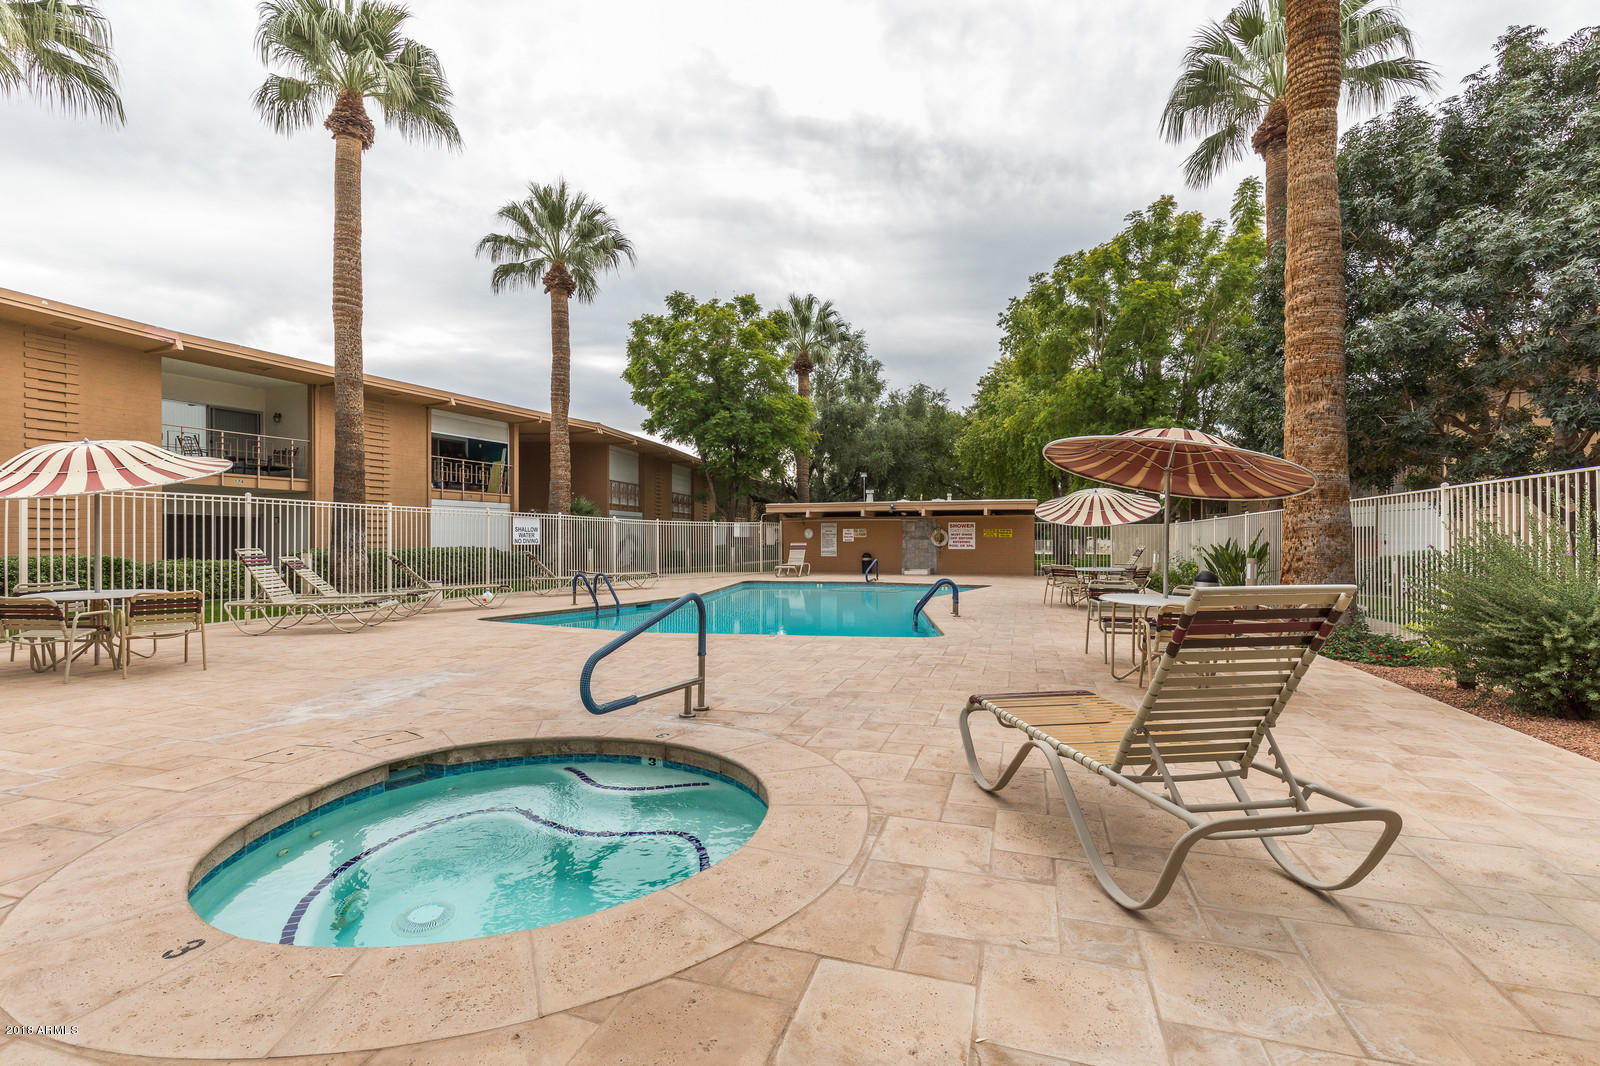 MLS 5852532 6125 E INDIAN SCHOOL Road Unit 105, Scottsdale, AZ 85251 Scottsdale AZ Old Town Scottsdale